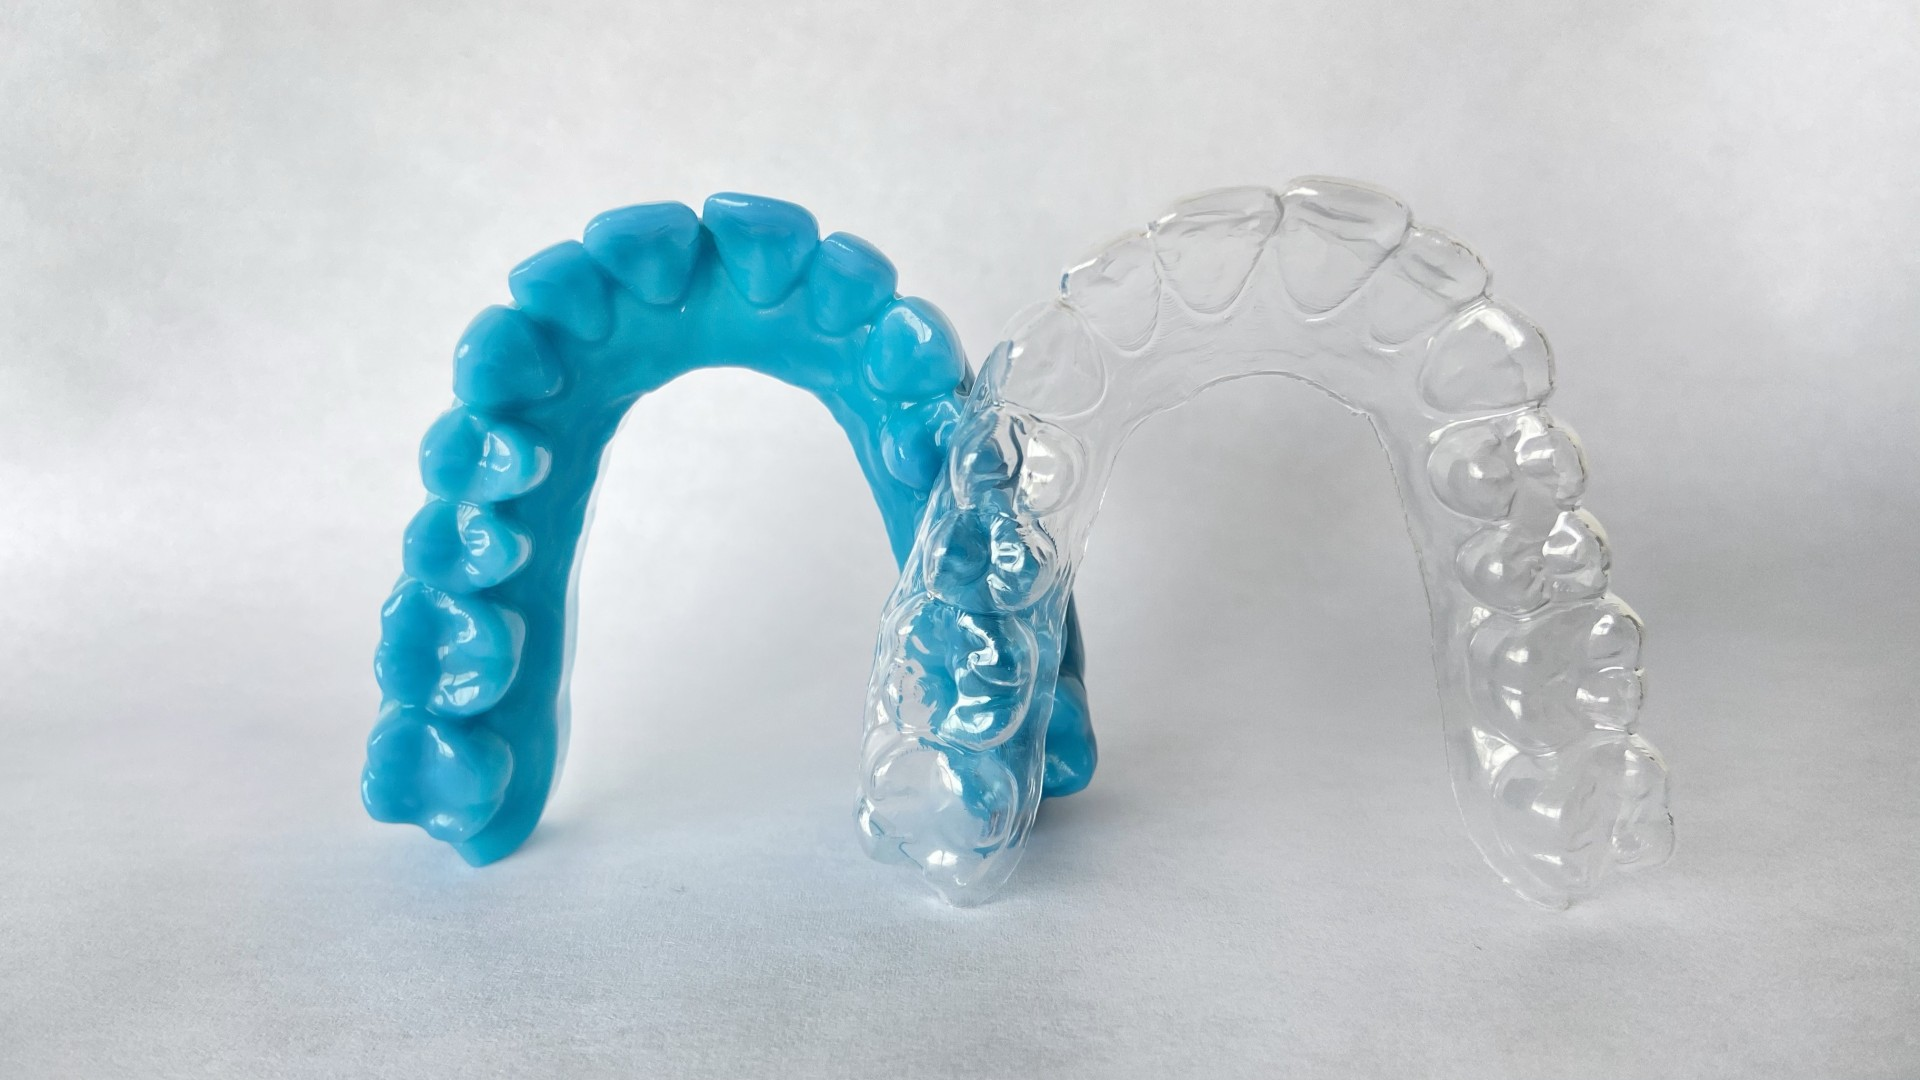 Clear aligners: making high-end alignment mold with Absolute Aligner, a perfect material